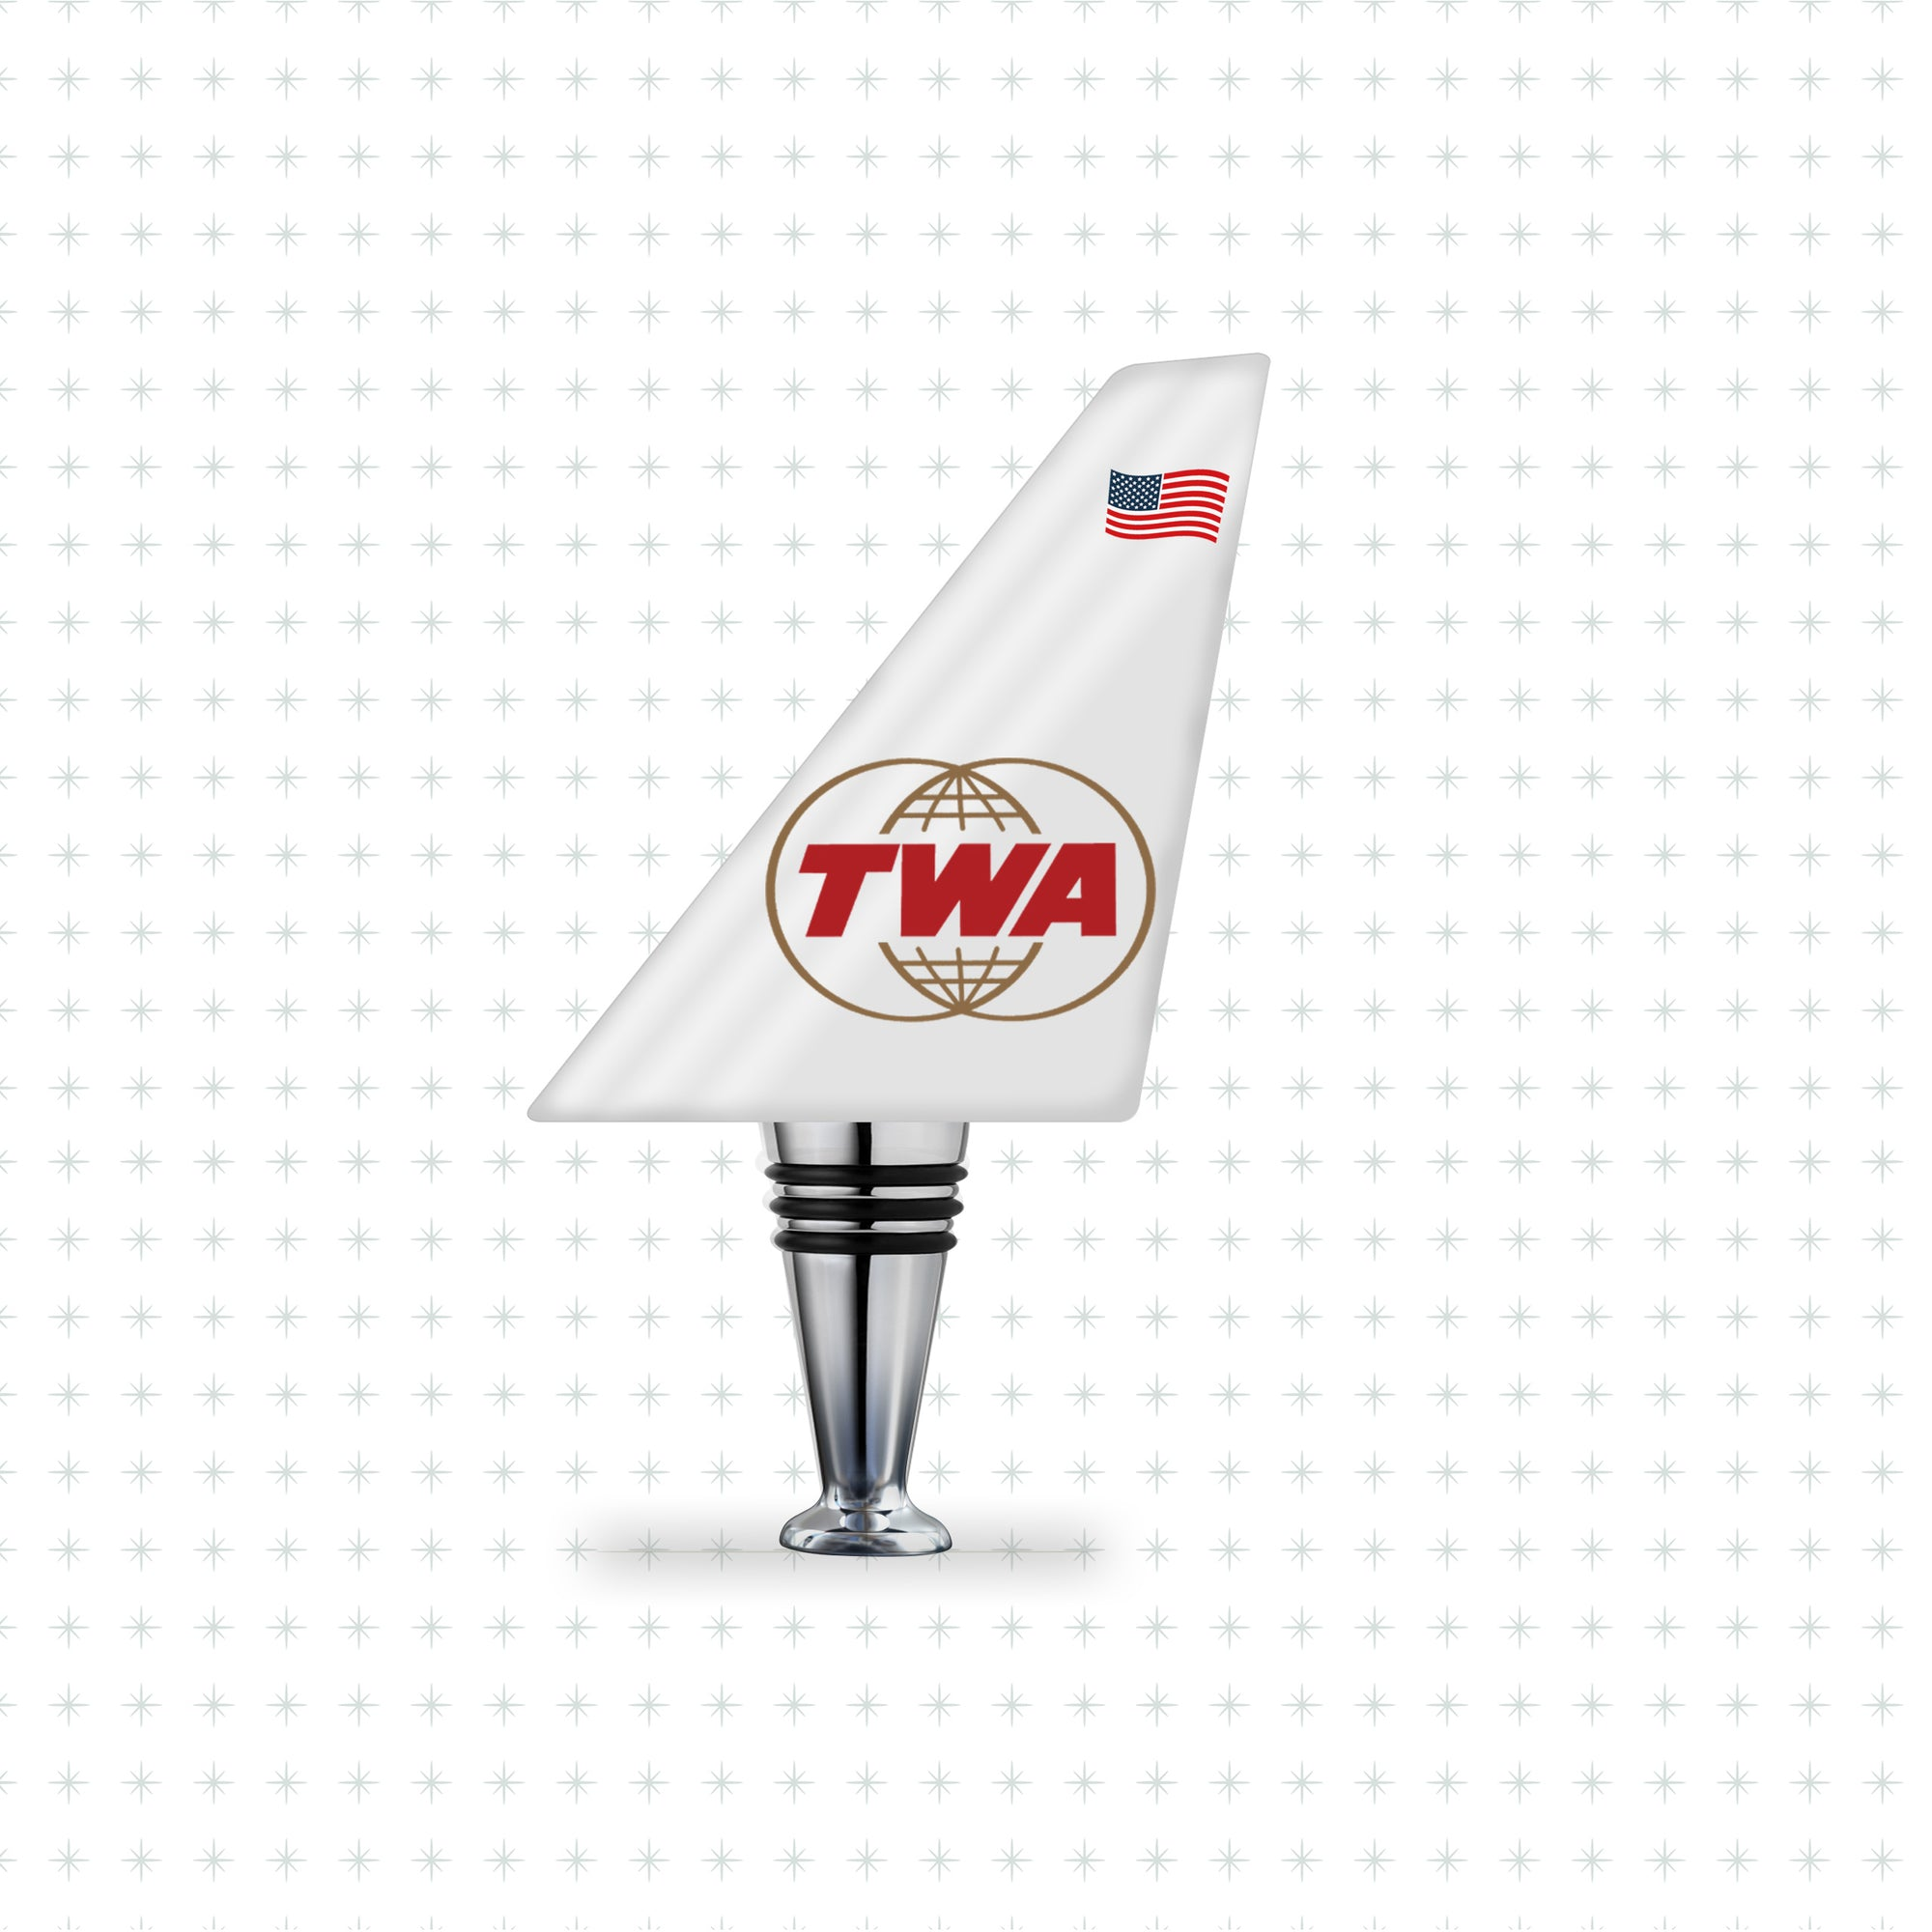 TWA (Double-Globe) - Airline Tails™️ Bottle Stopper